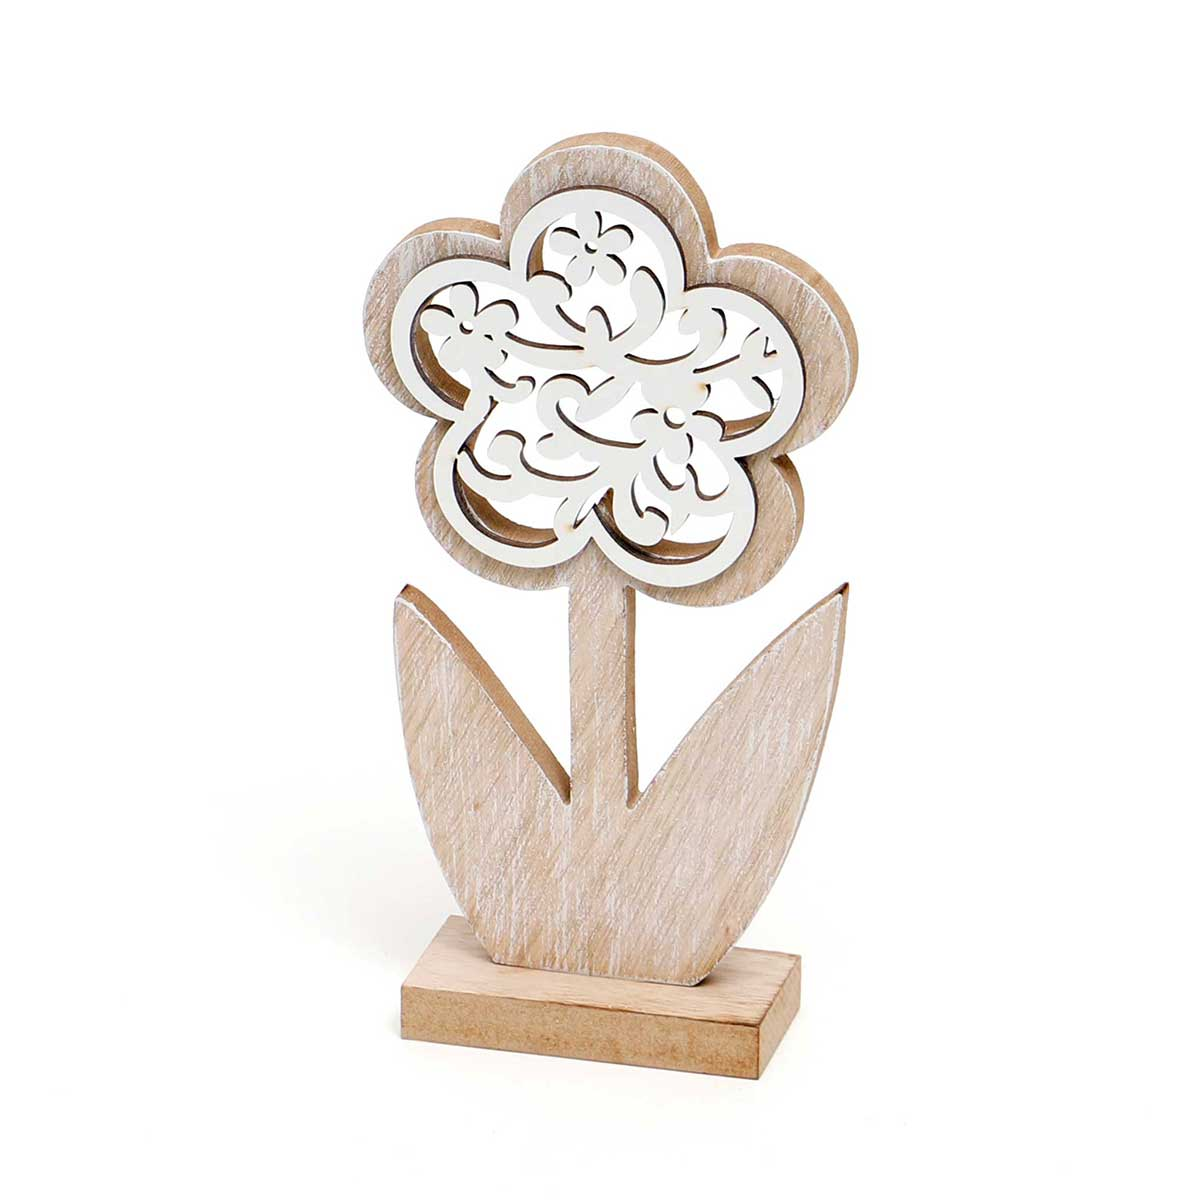 WOOD FLOWER WITH CUTOUTS ON STAND